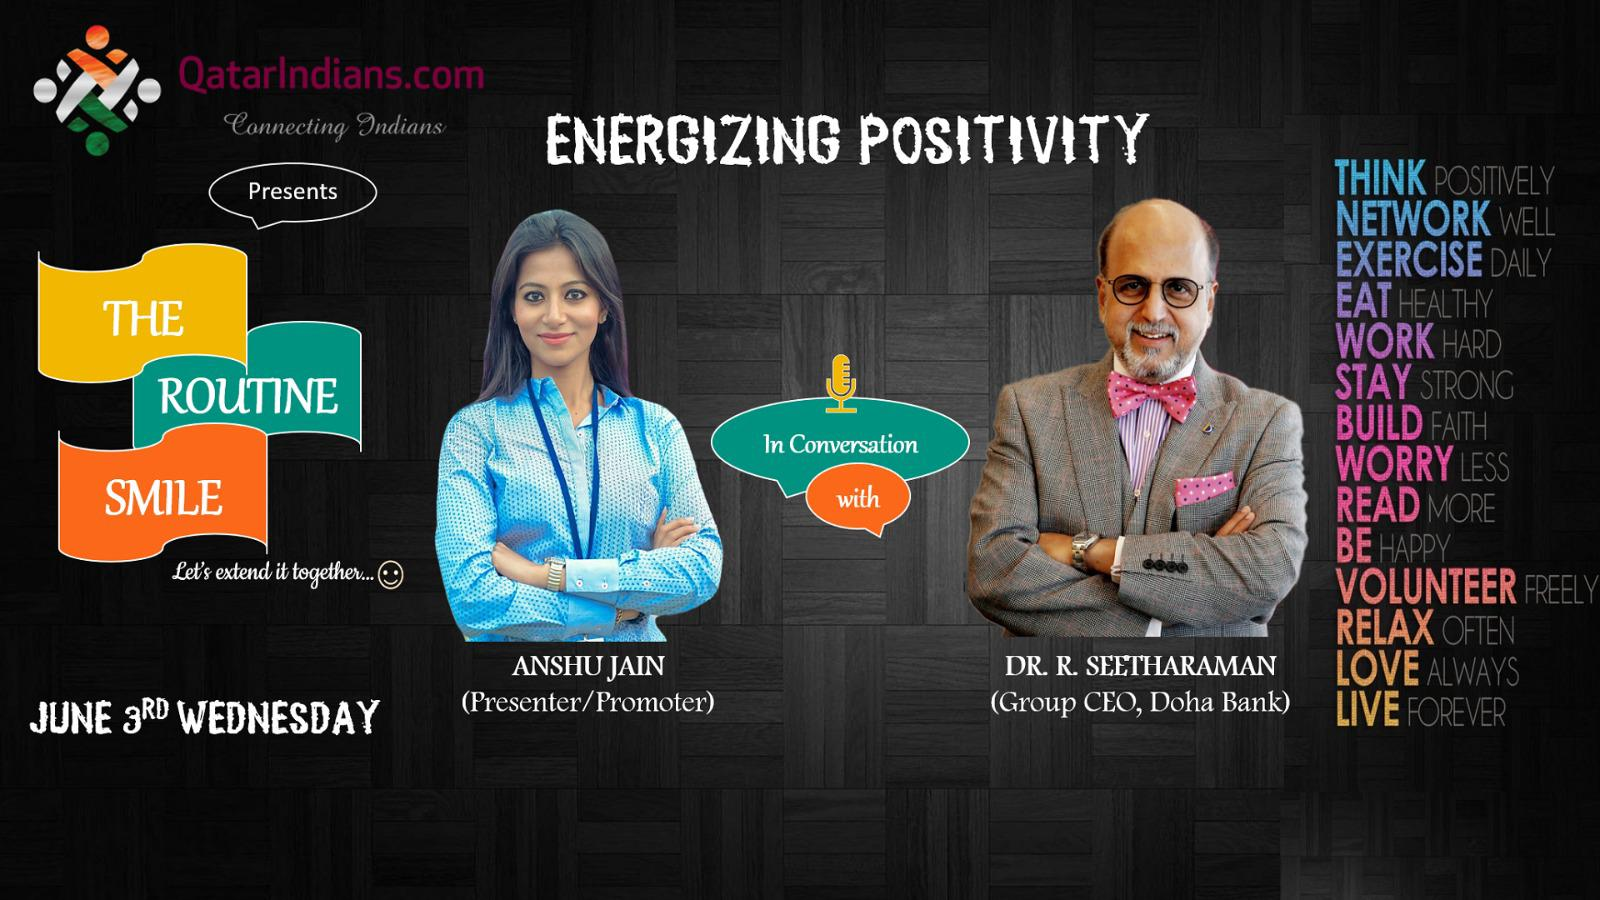 """The Routine Smile"" - ""Energizing Positivity"" 